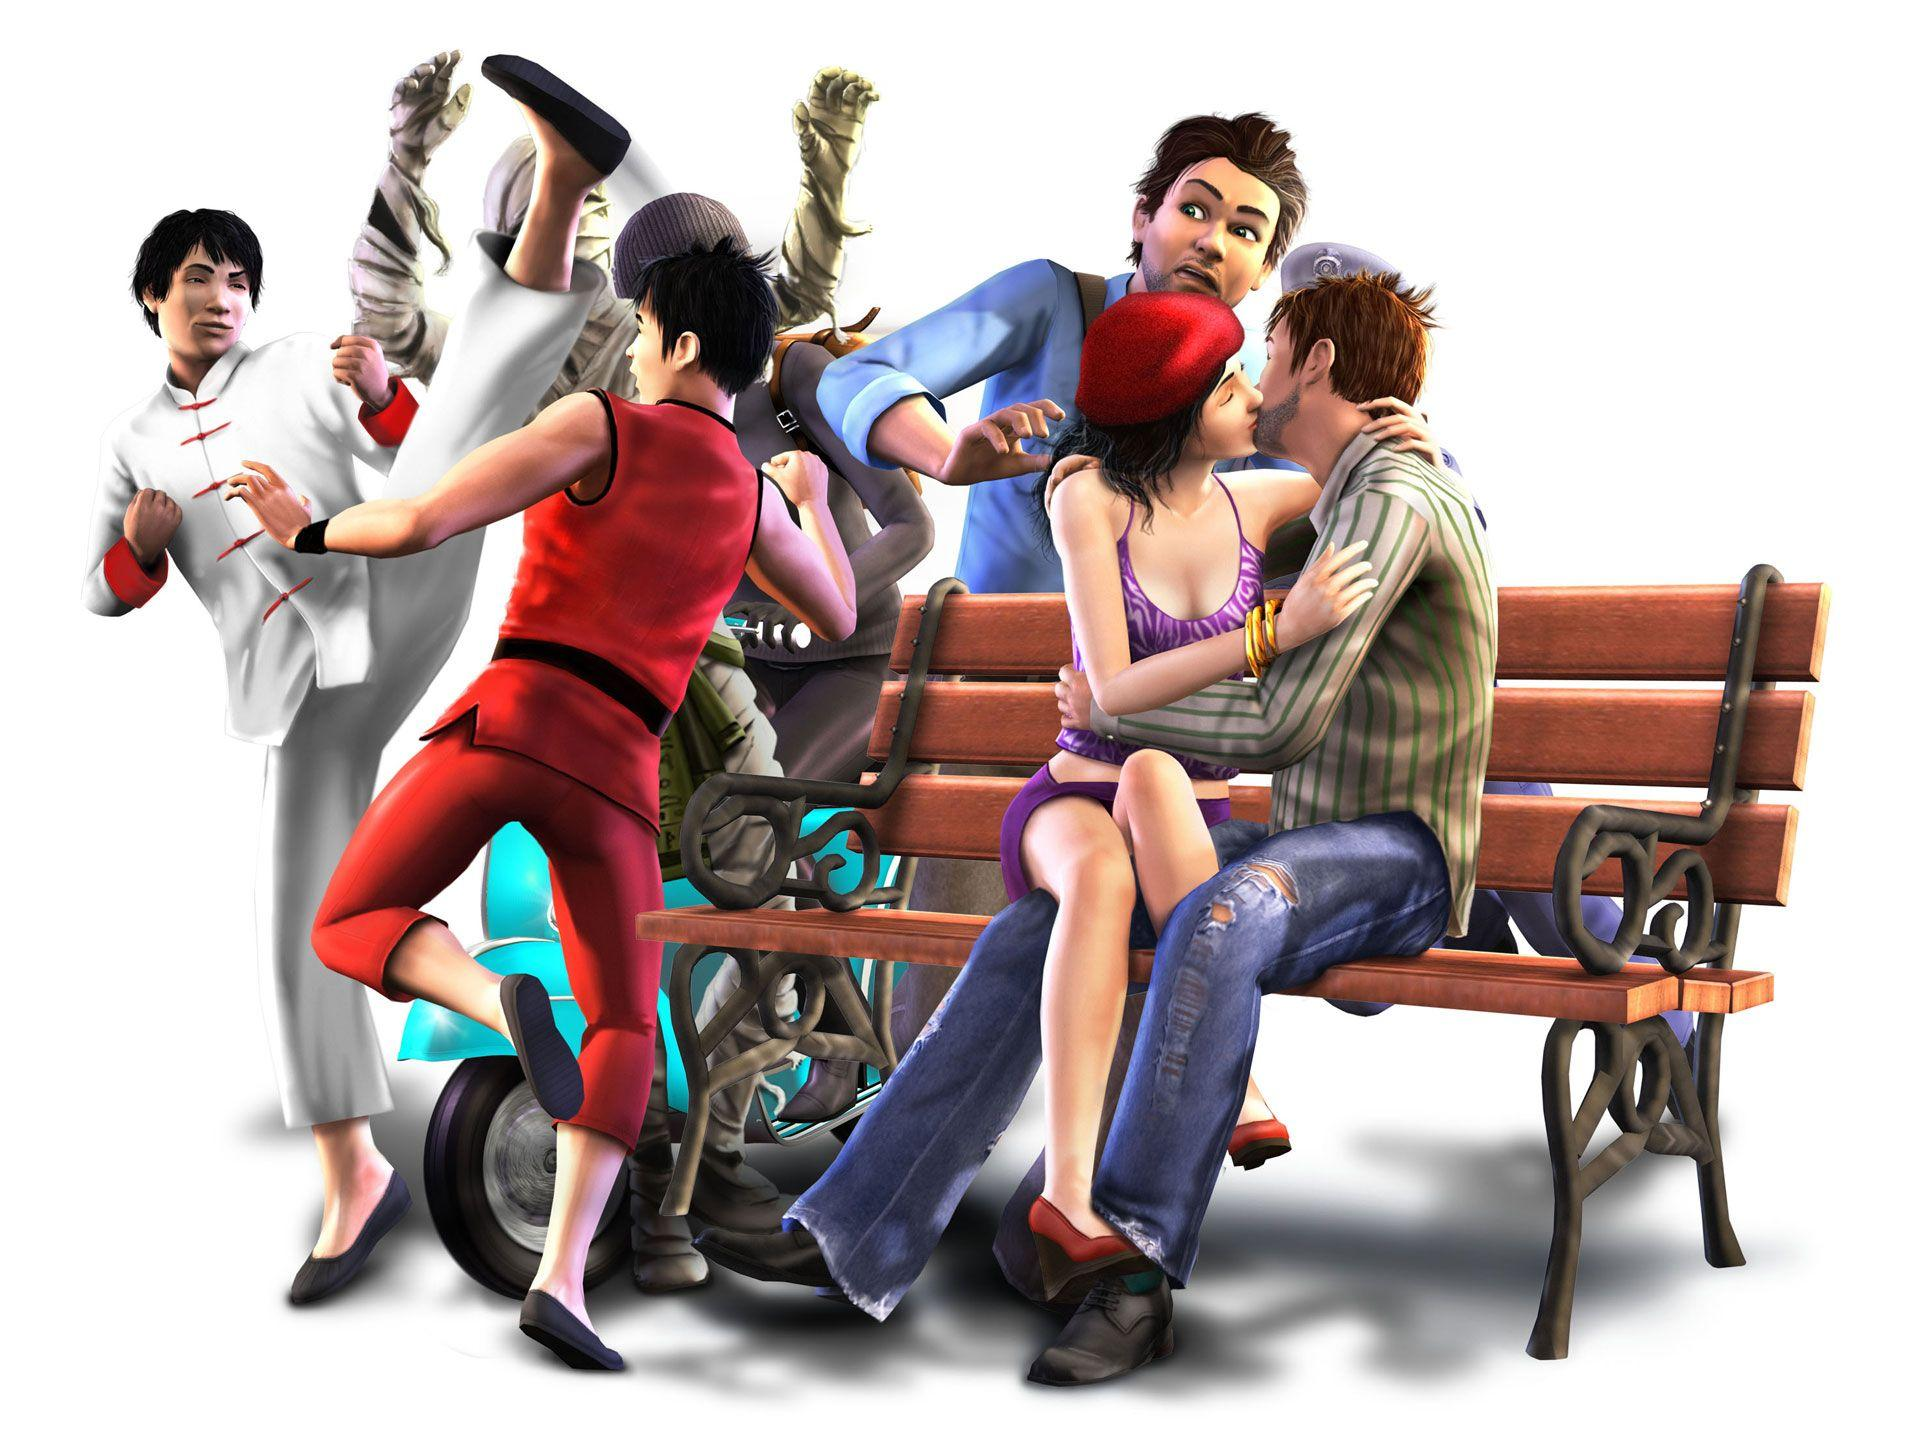 The Sims 3 World Adventures Wallpapers | HD Wallpapers